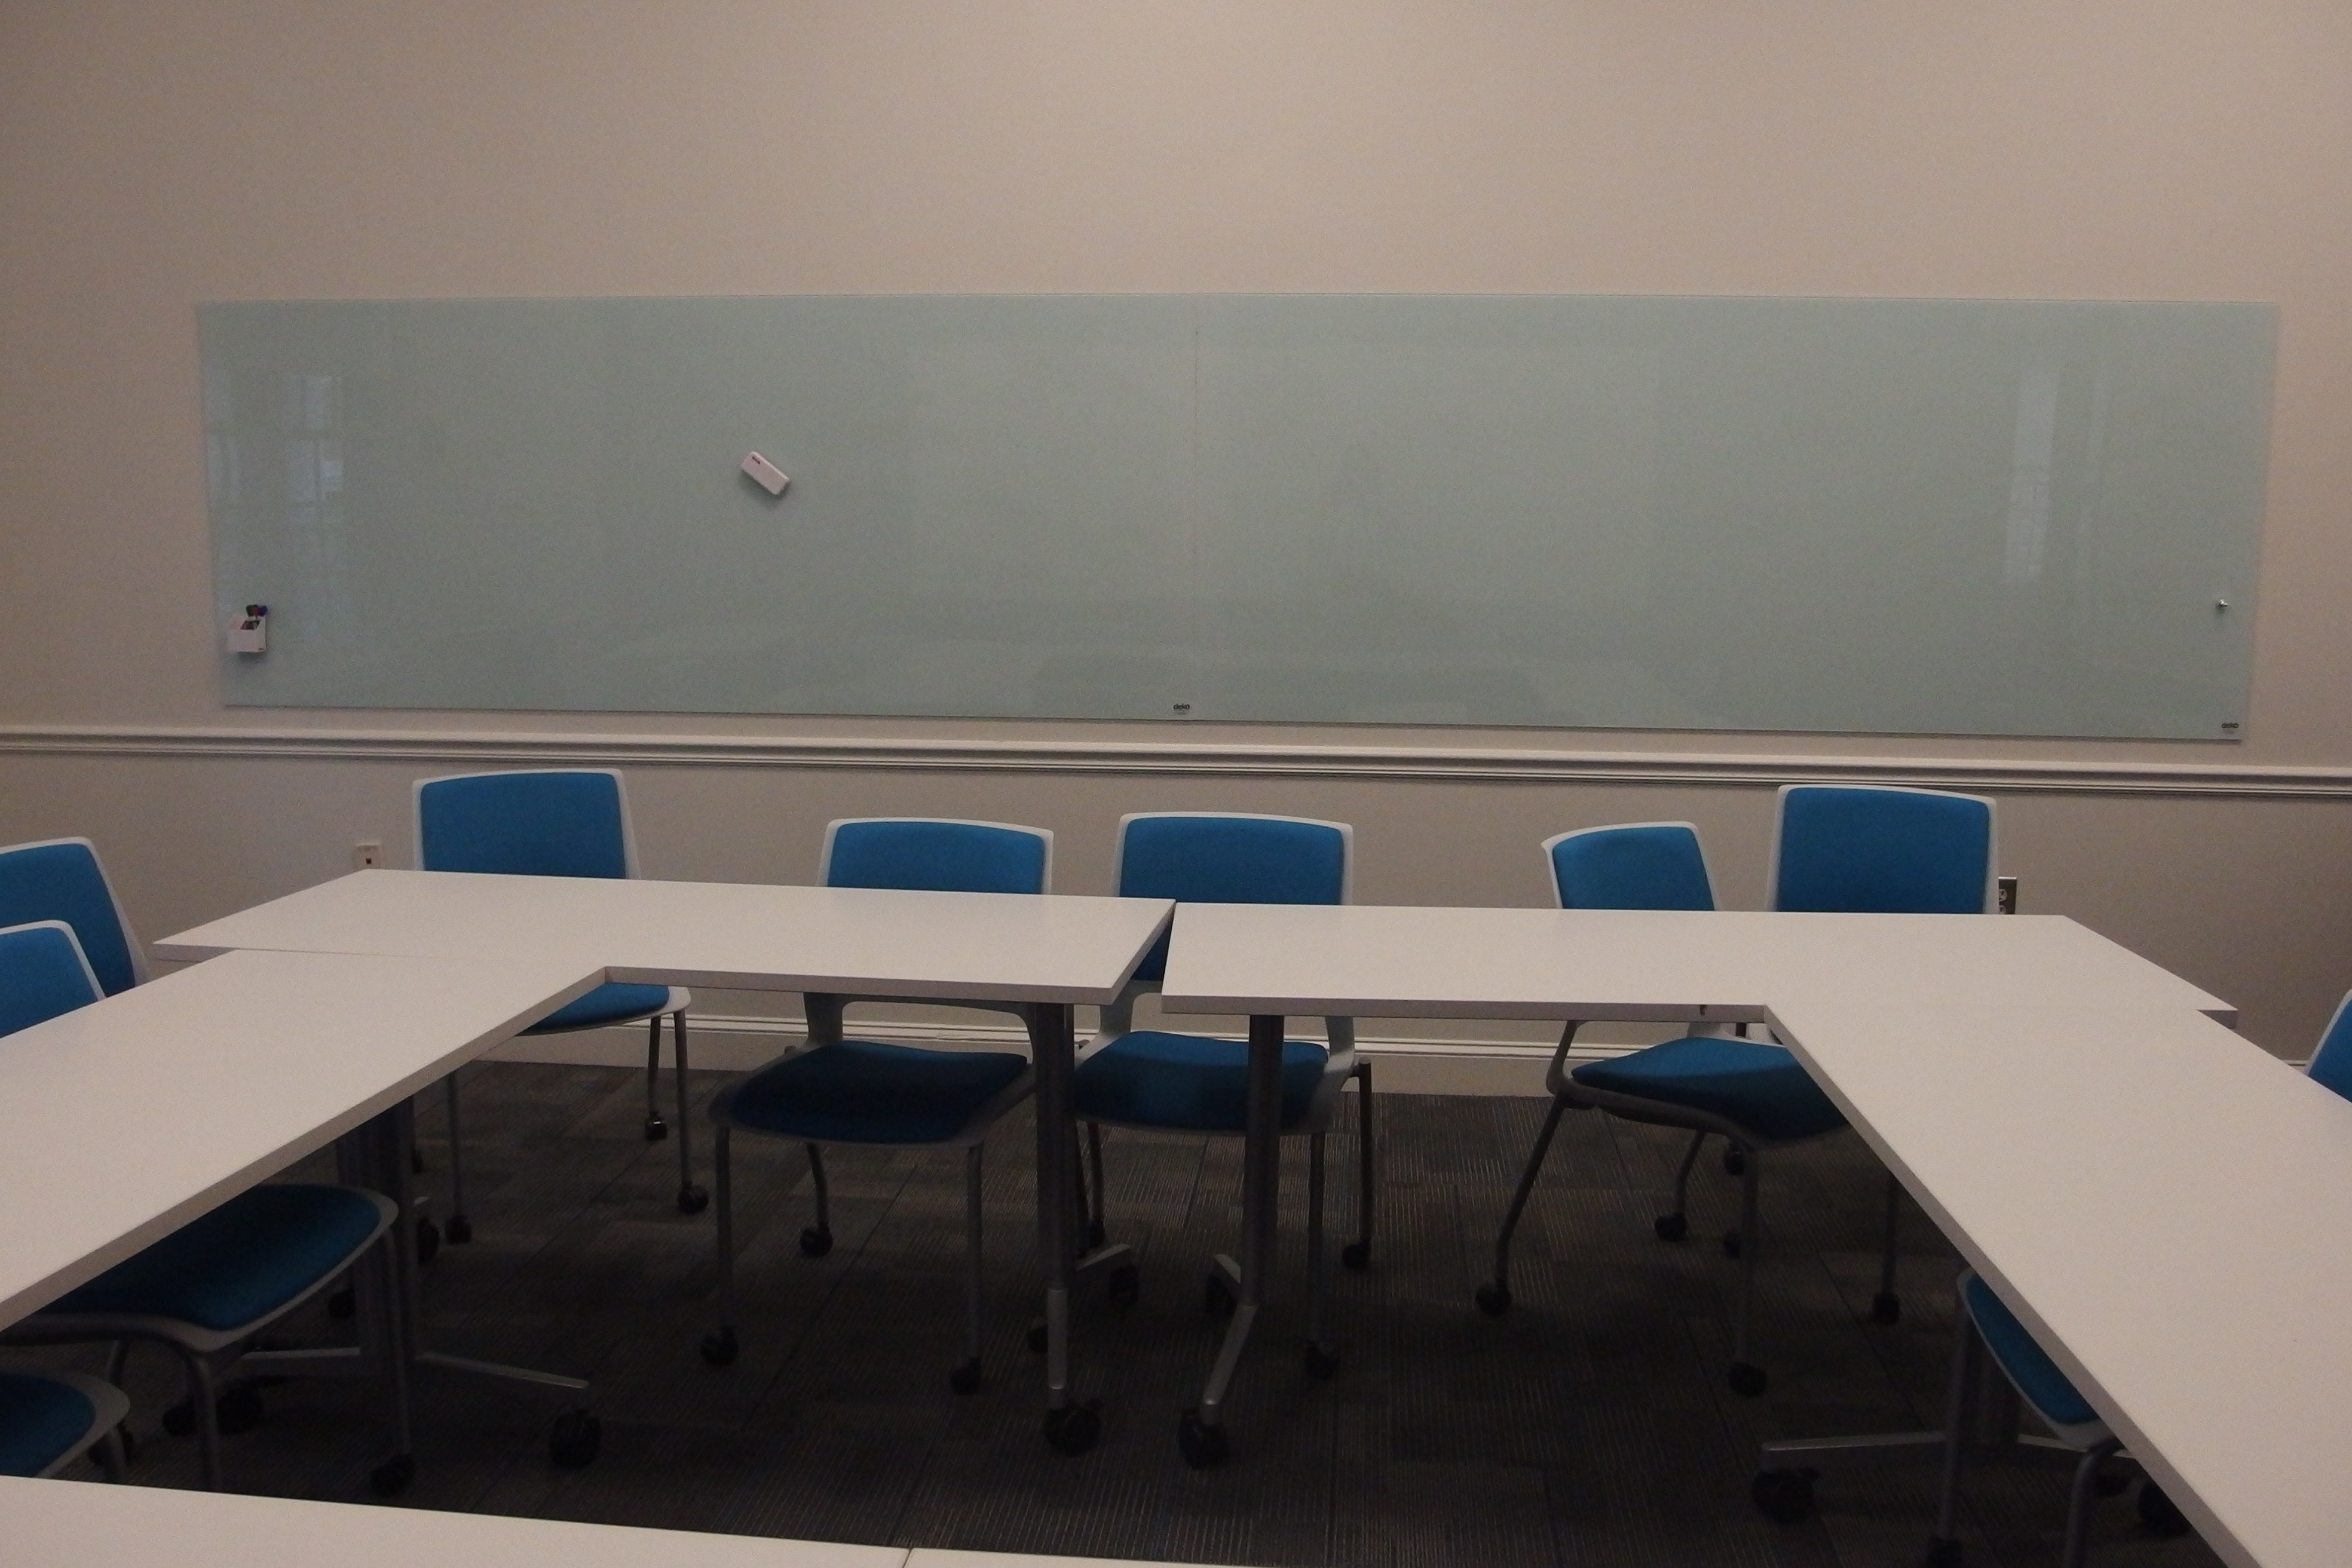 A photo of the room from the front.